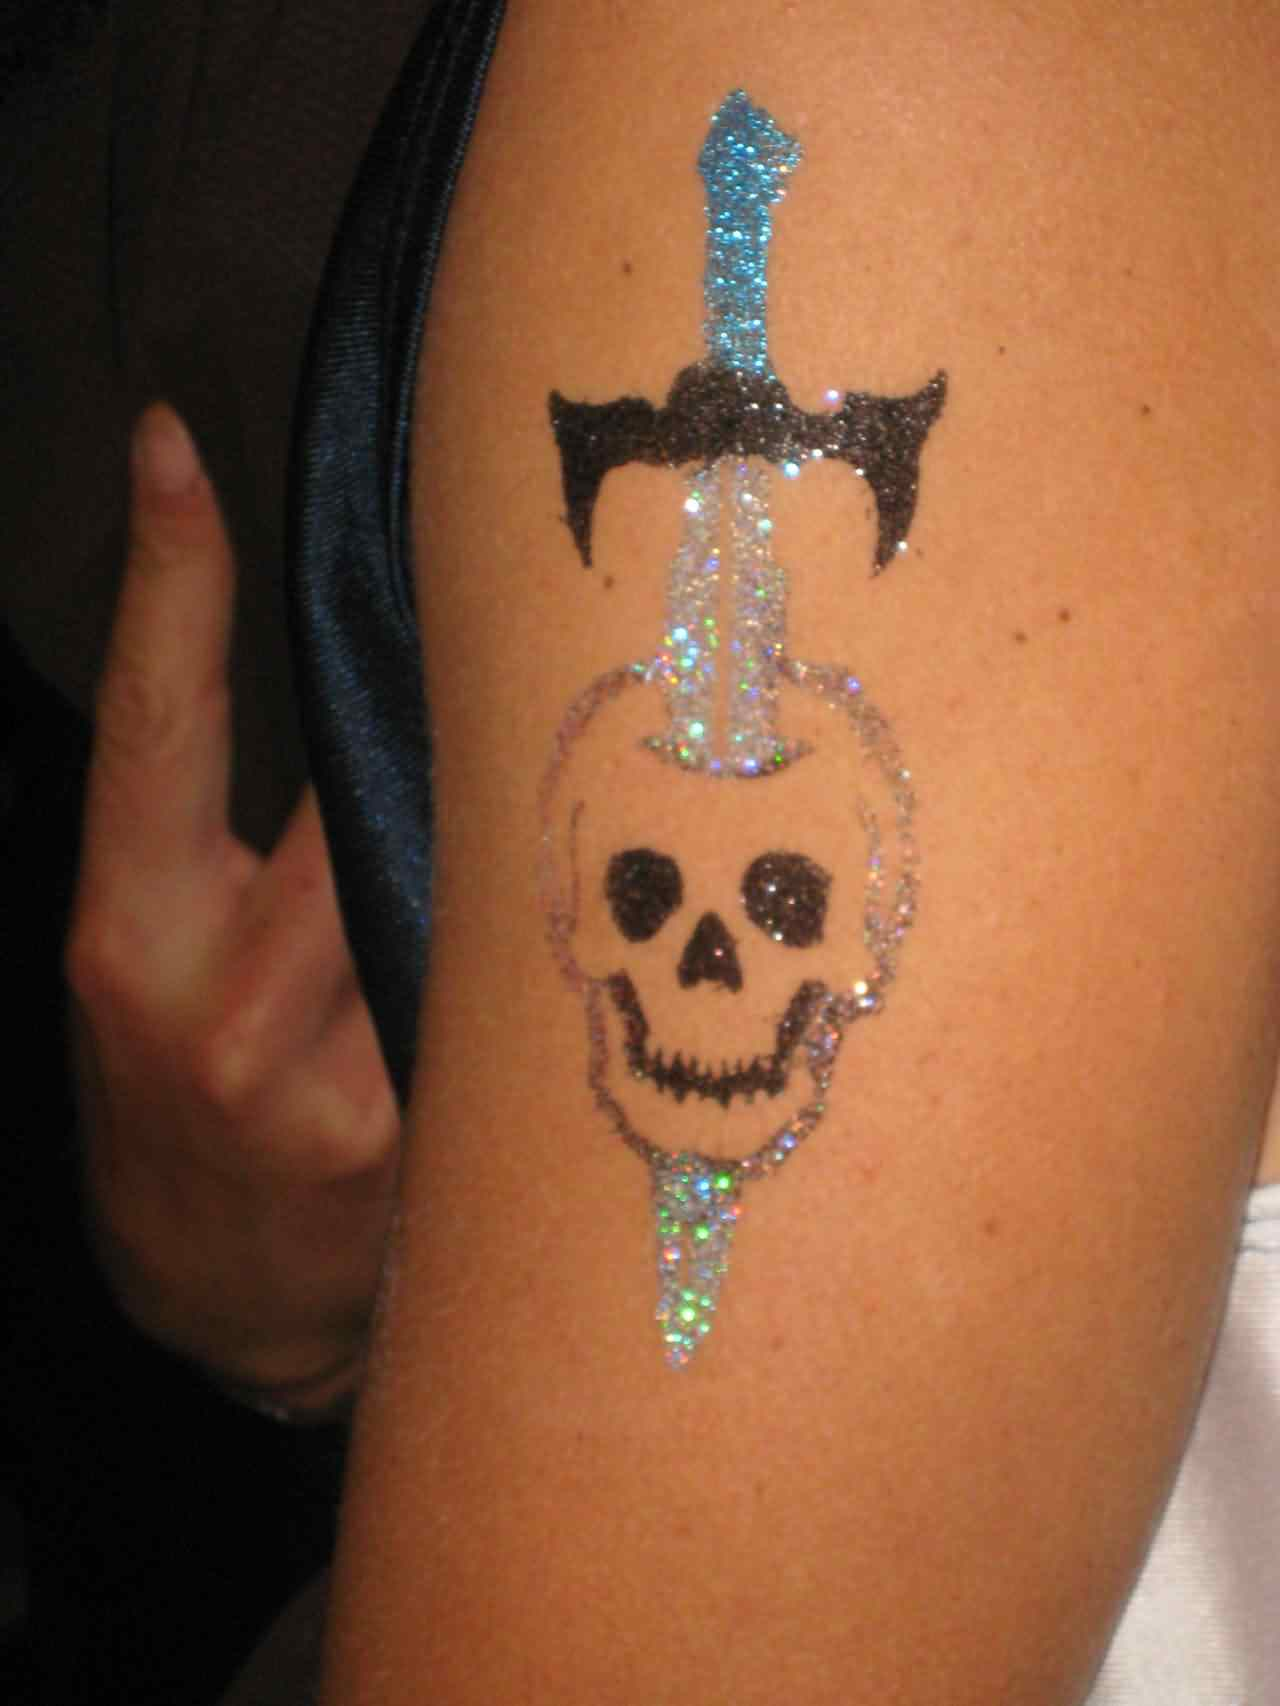 Glitter Sword In Skull Tattoo On Arm